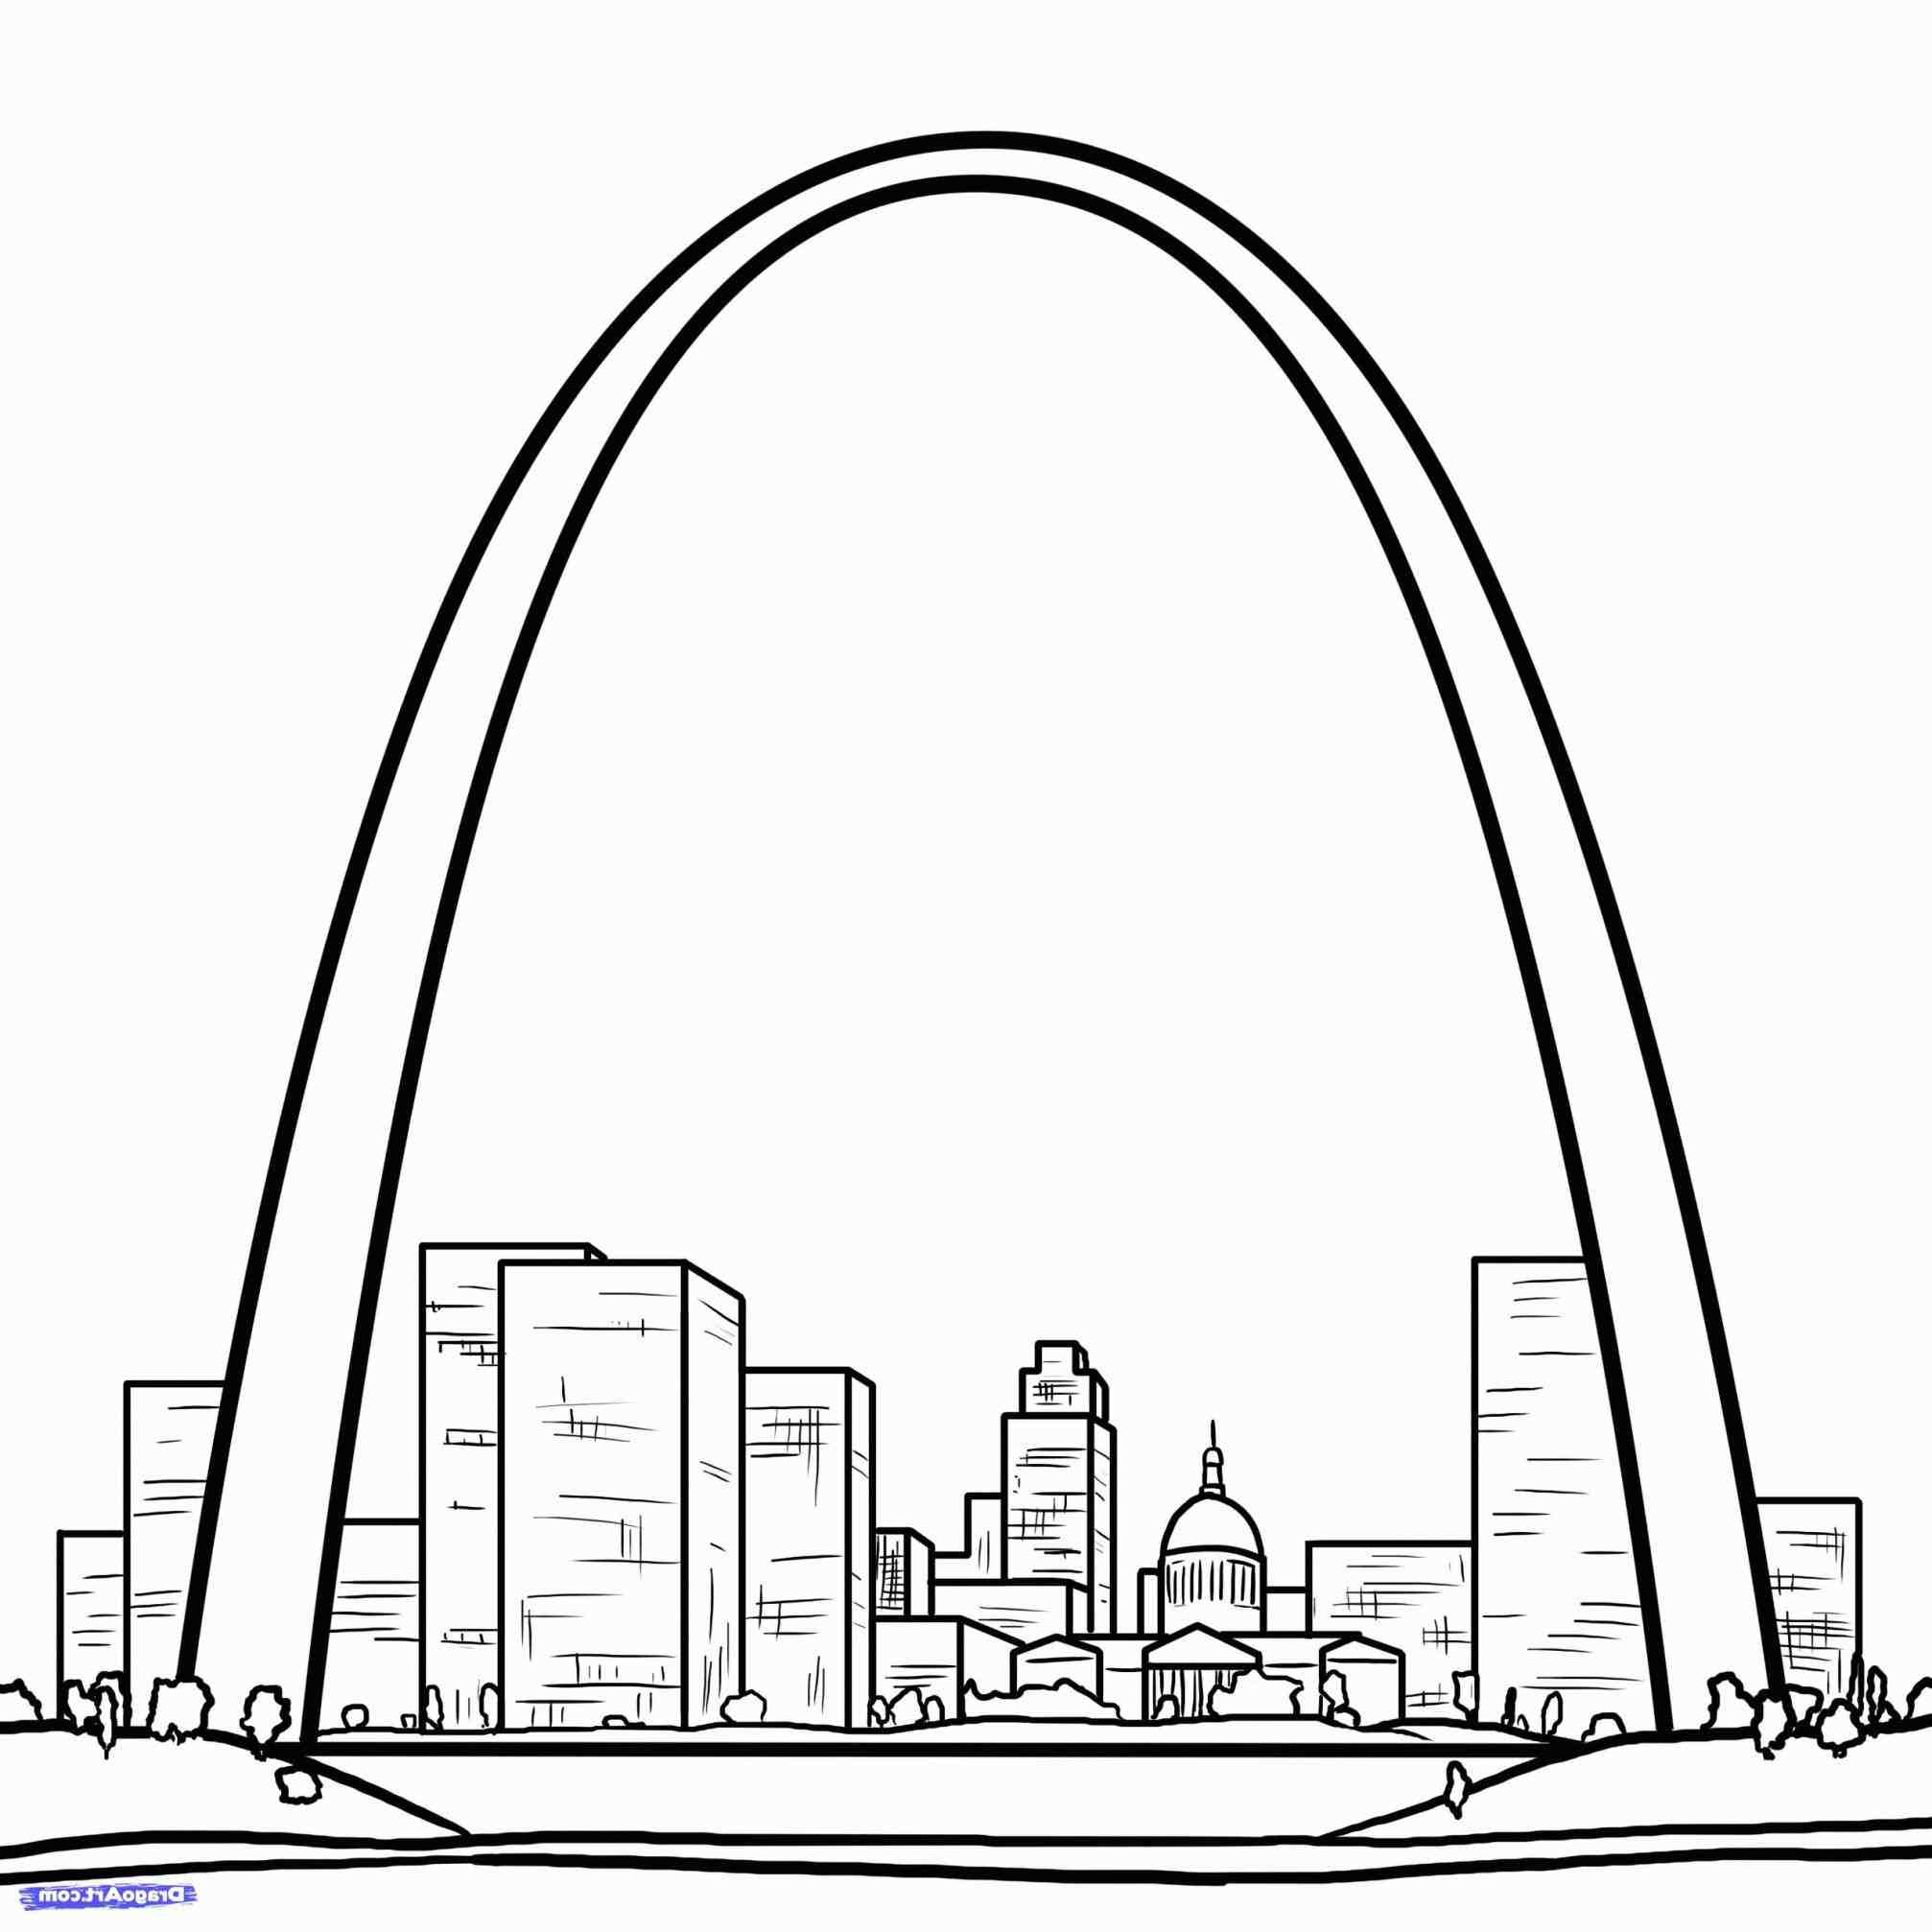 St Louis Skyline Drawing - ClipArt Best